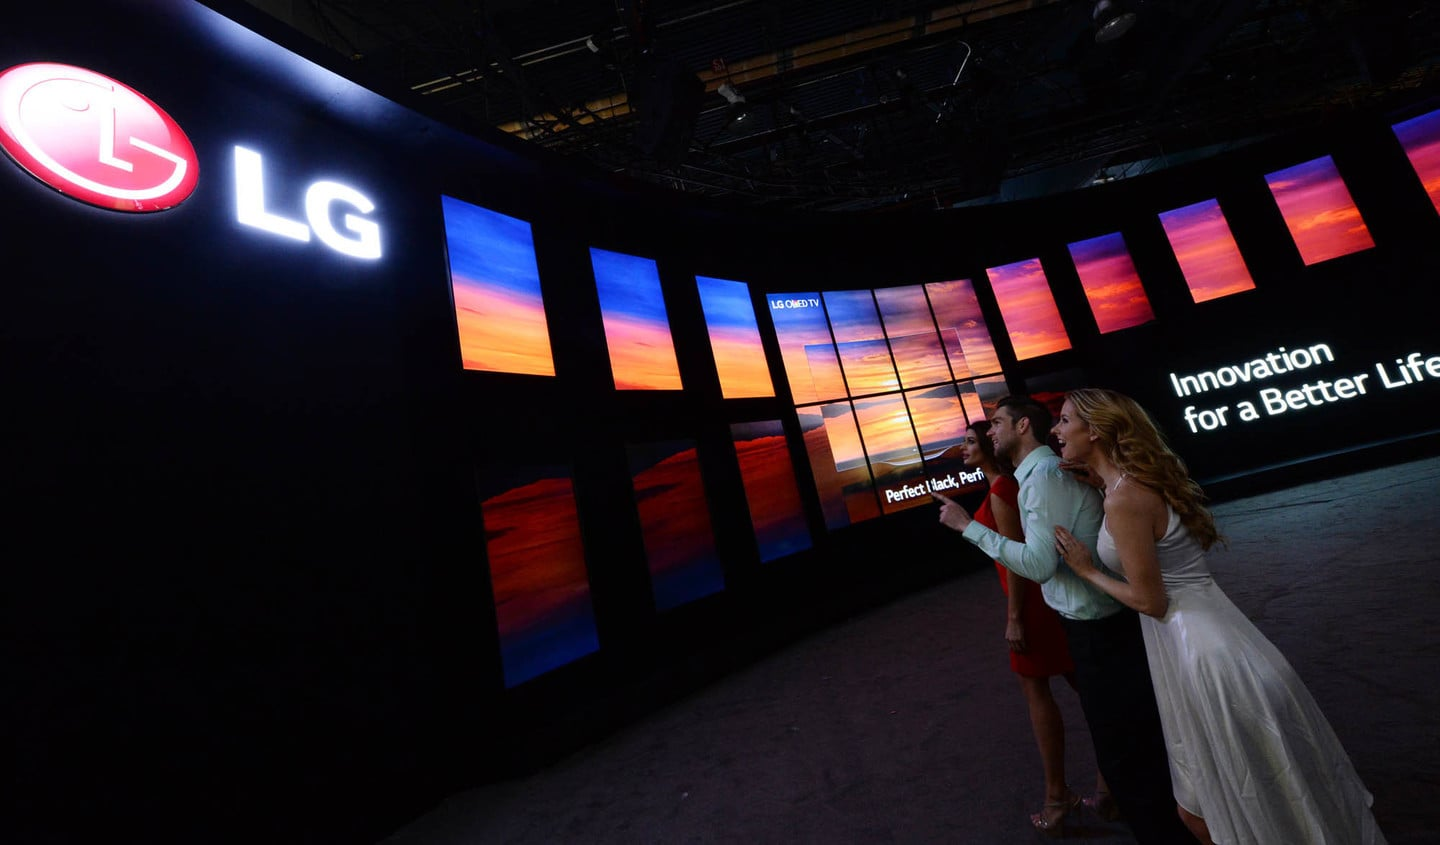 Apple to invest W3tr in LG's OLED production